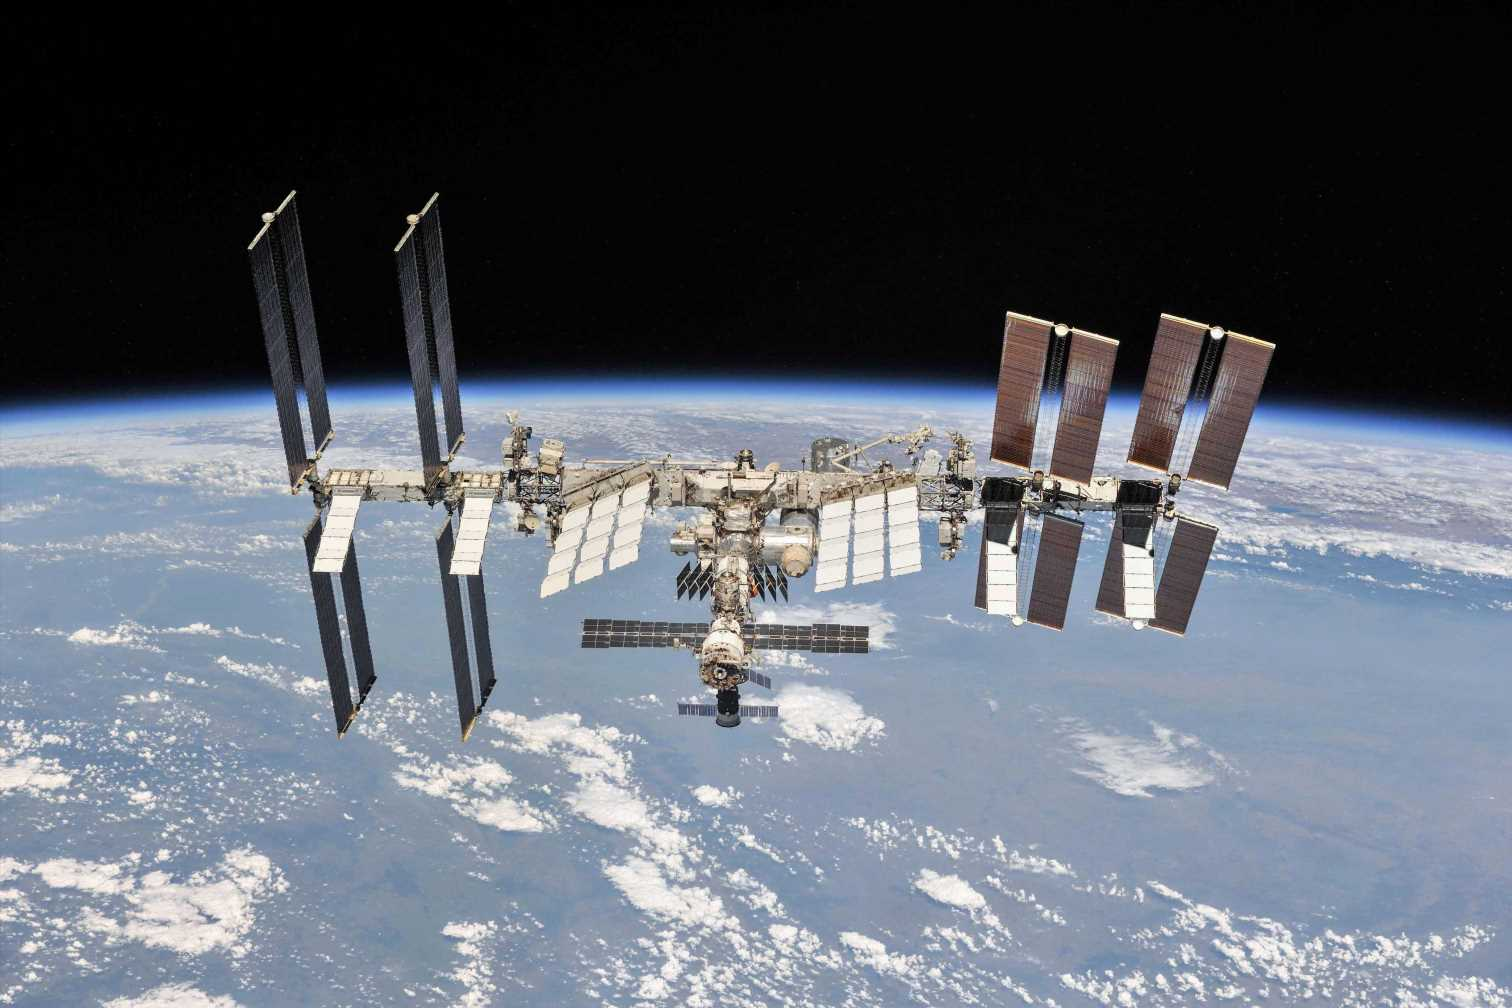 Bonkers company plots space station to rival ISS as 'outpost for civilian astronauts'